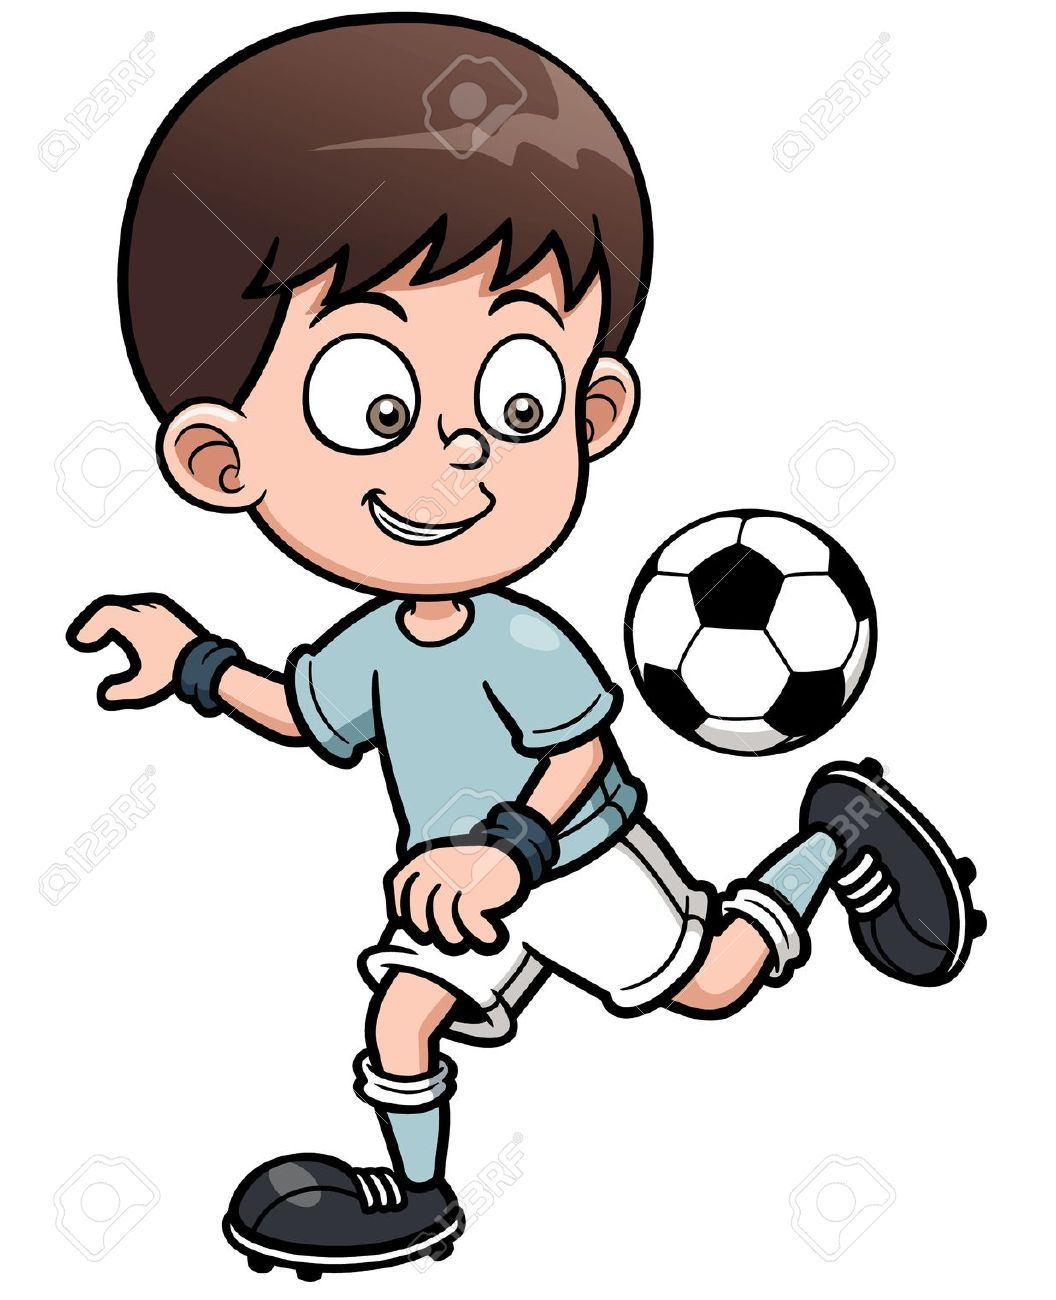 Science vector images over 84 600 vectorstock page 446 - 21453115 Illustration Soccer Player Stock Vector Cartoon Jpg